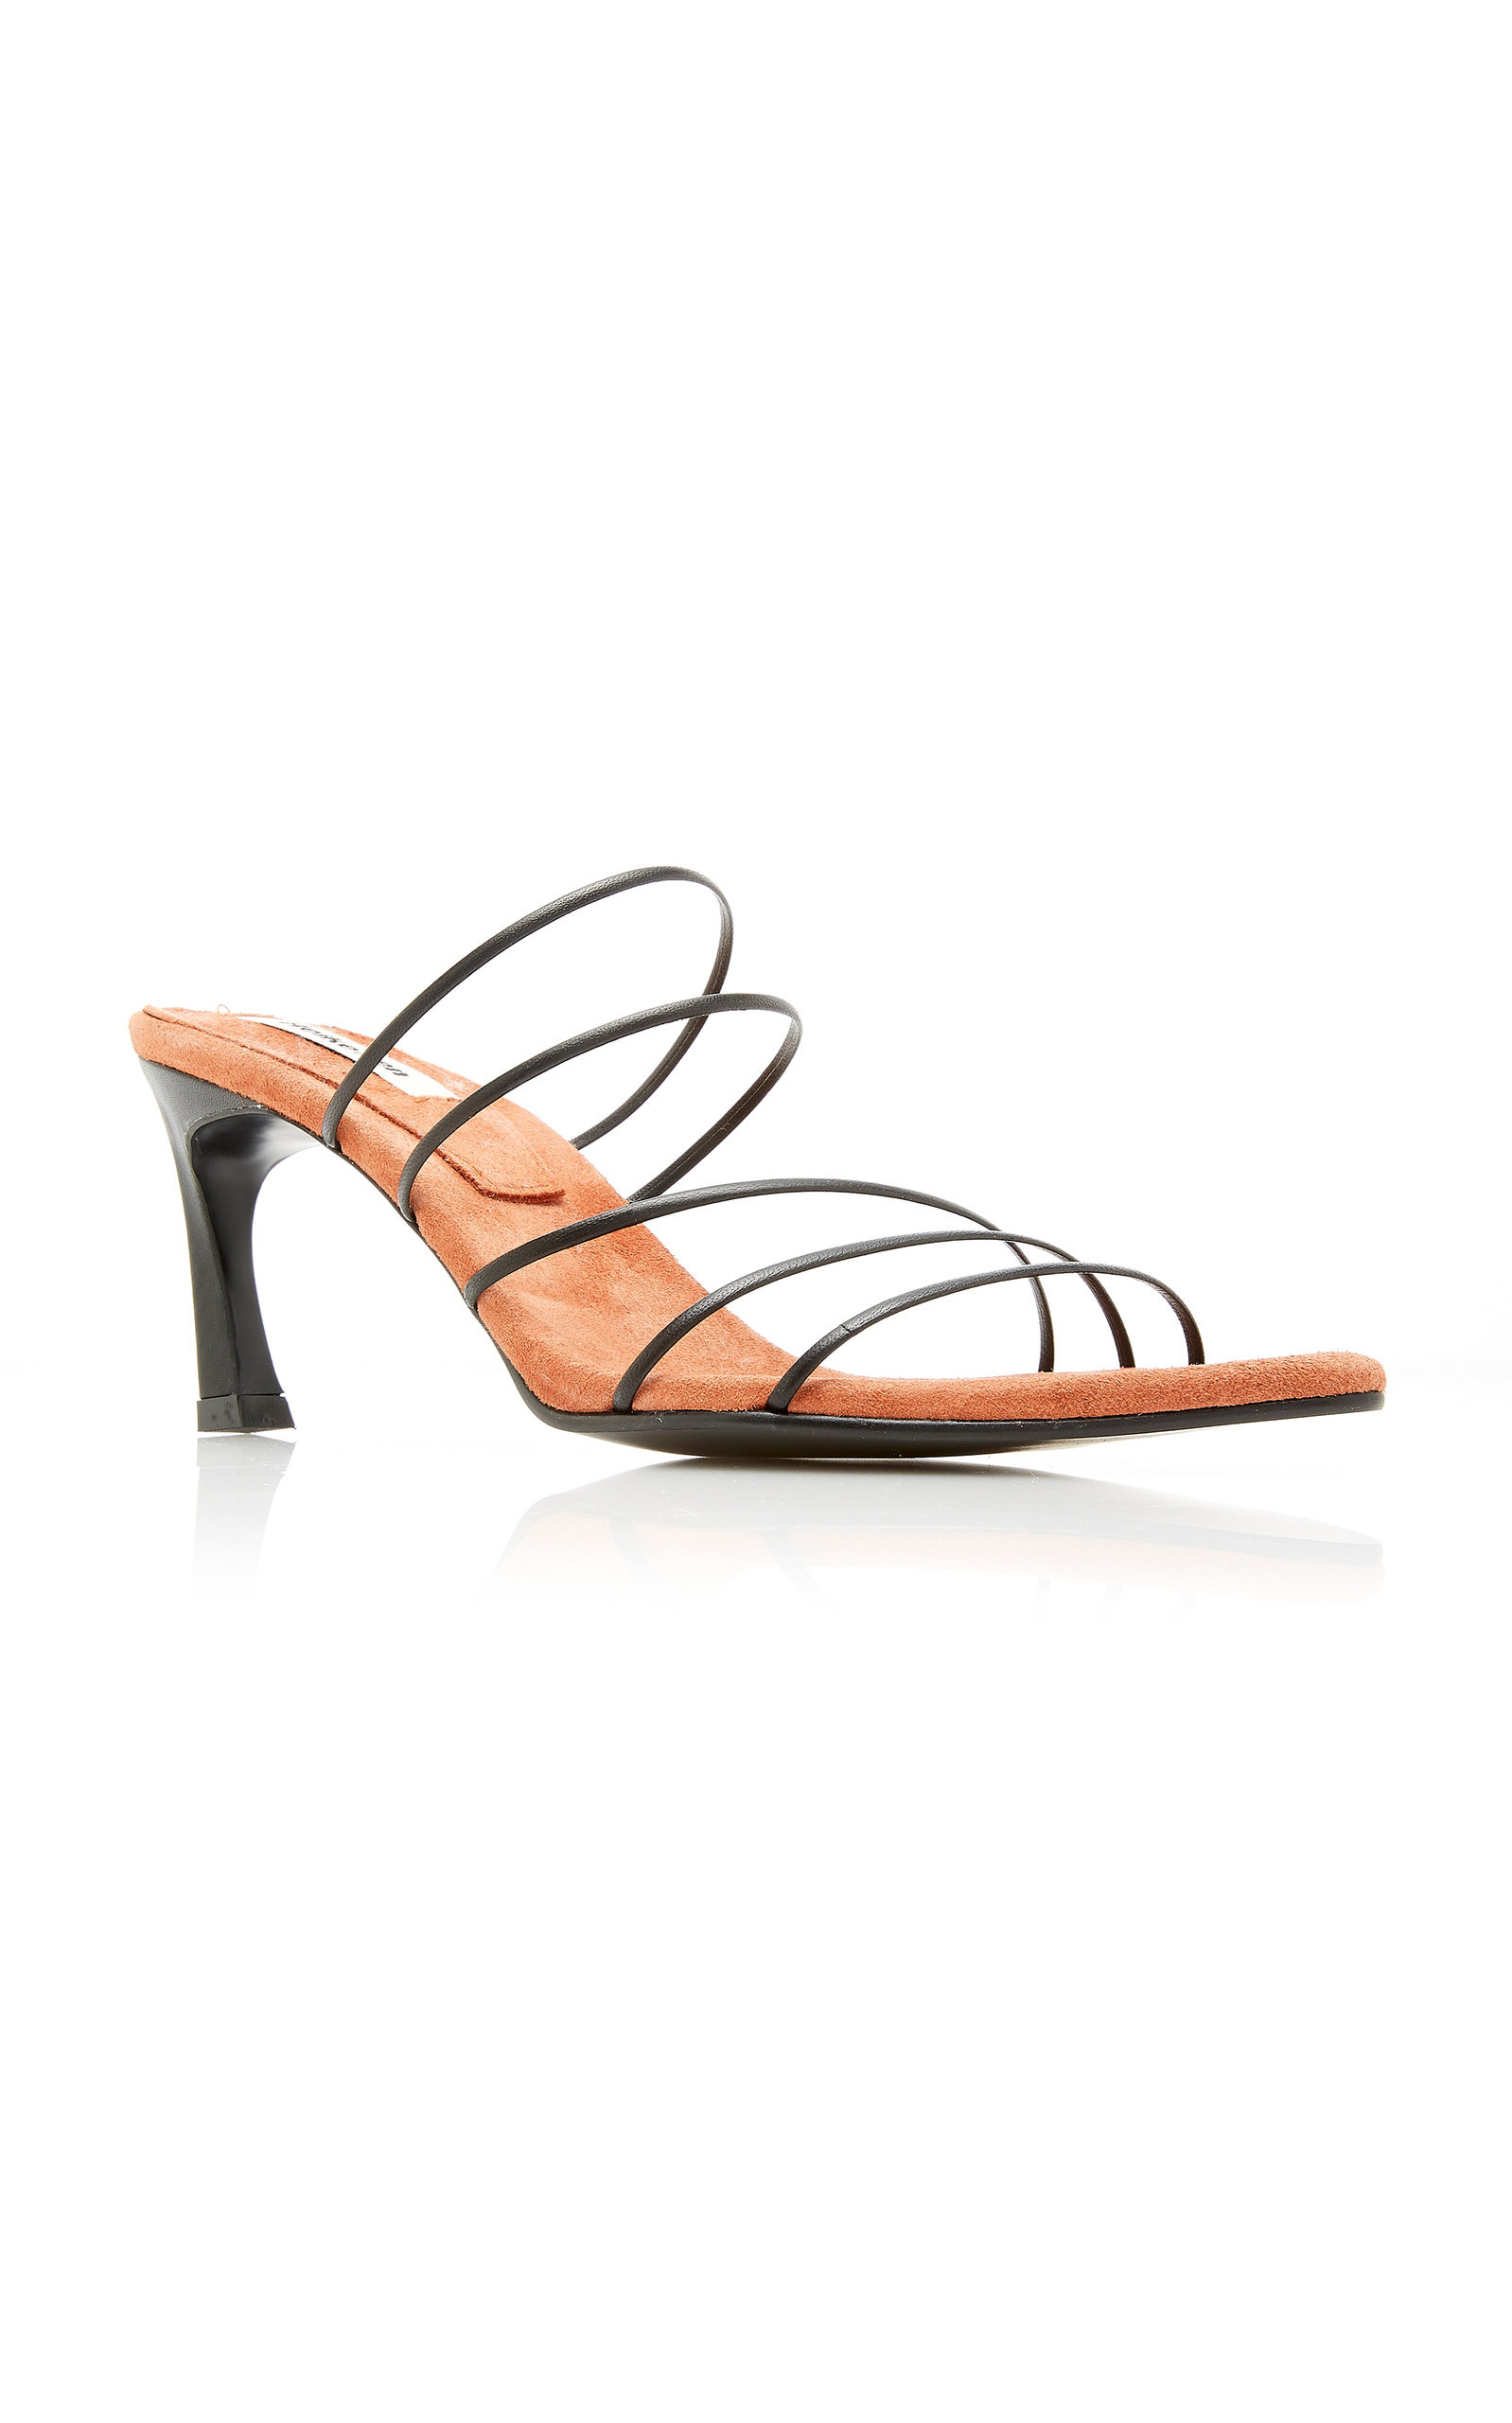 large_reike-nen-brown-string-two-tone-leather-sandals.jpg